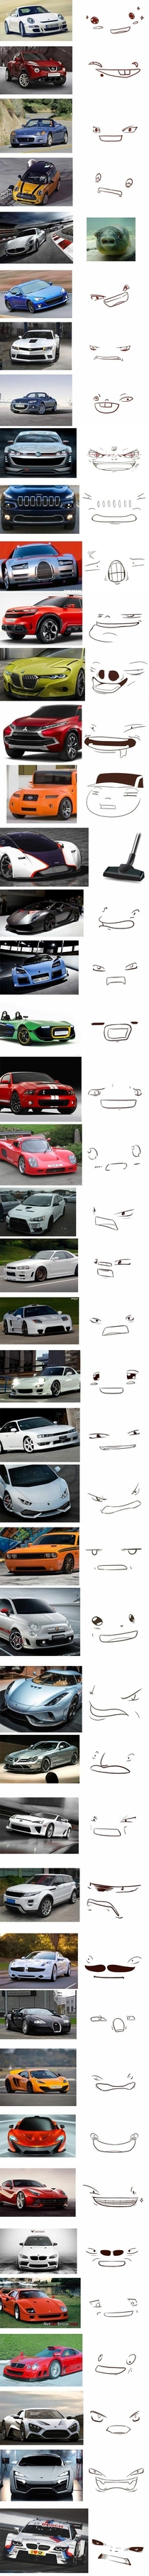 The many faces of cars